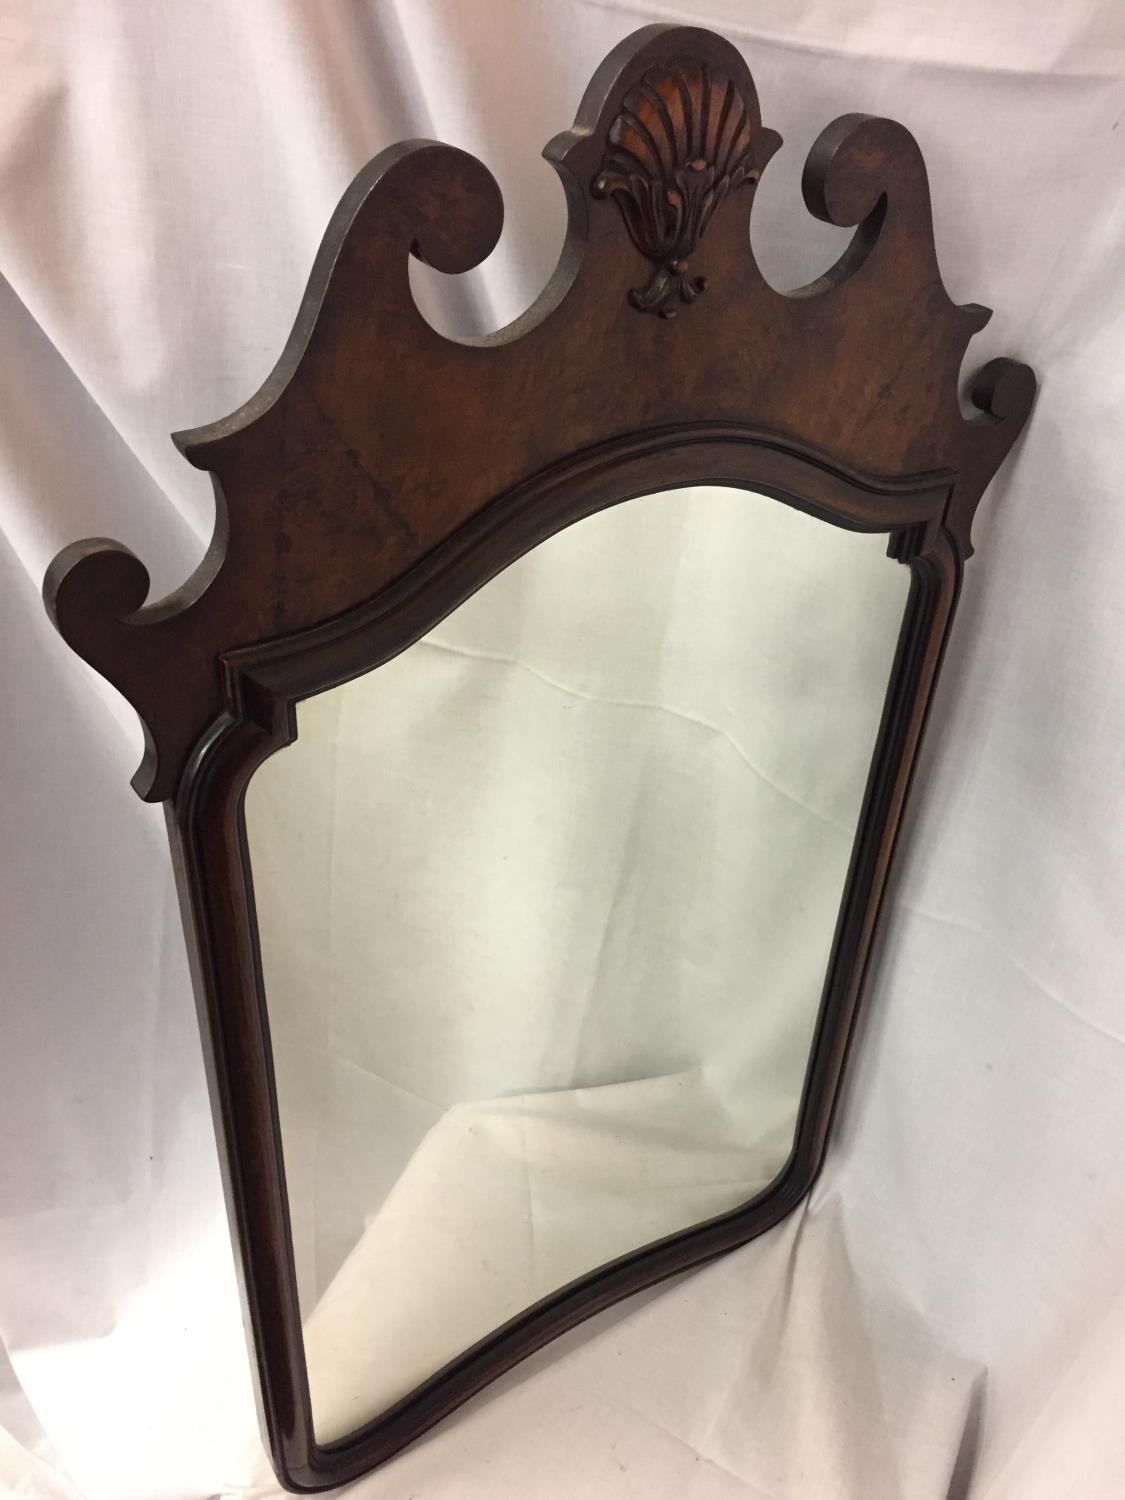 A LARGE OAK FRAMED MIRROR HEIGHT 93CM - Image 2 of 4